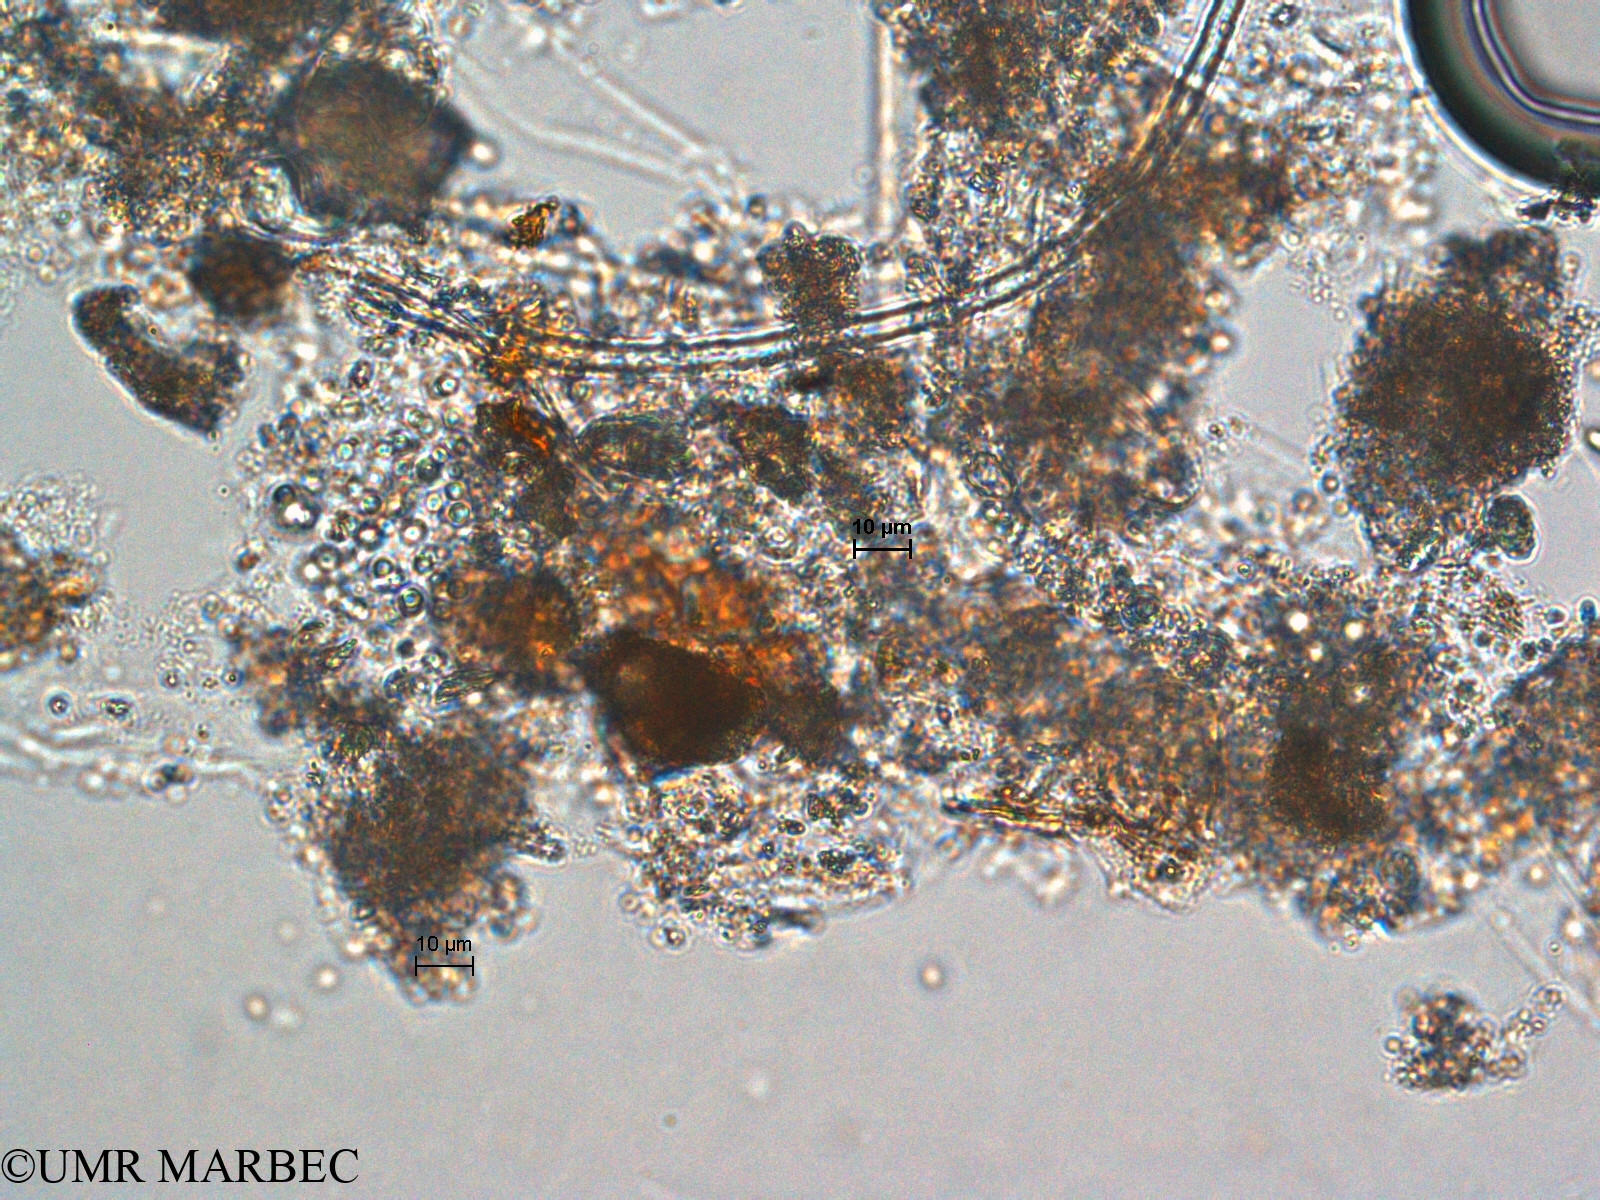 phyto/Scattered_Islands/europa/COMMA April 2011/Aphanocapsa sp4 (ancien Chroococcus sp7)(copy).jpg